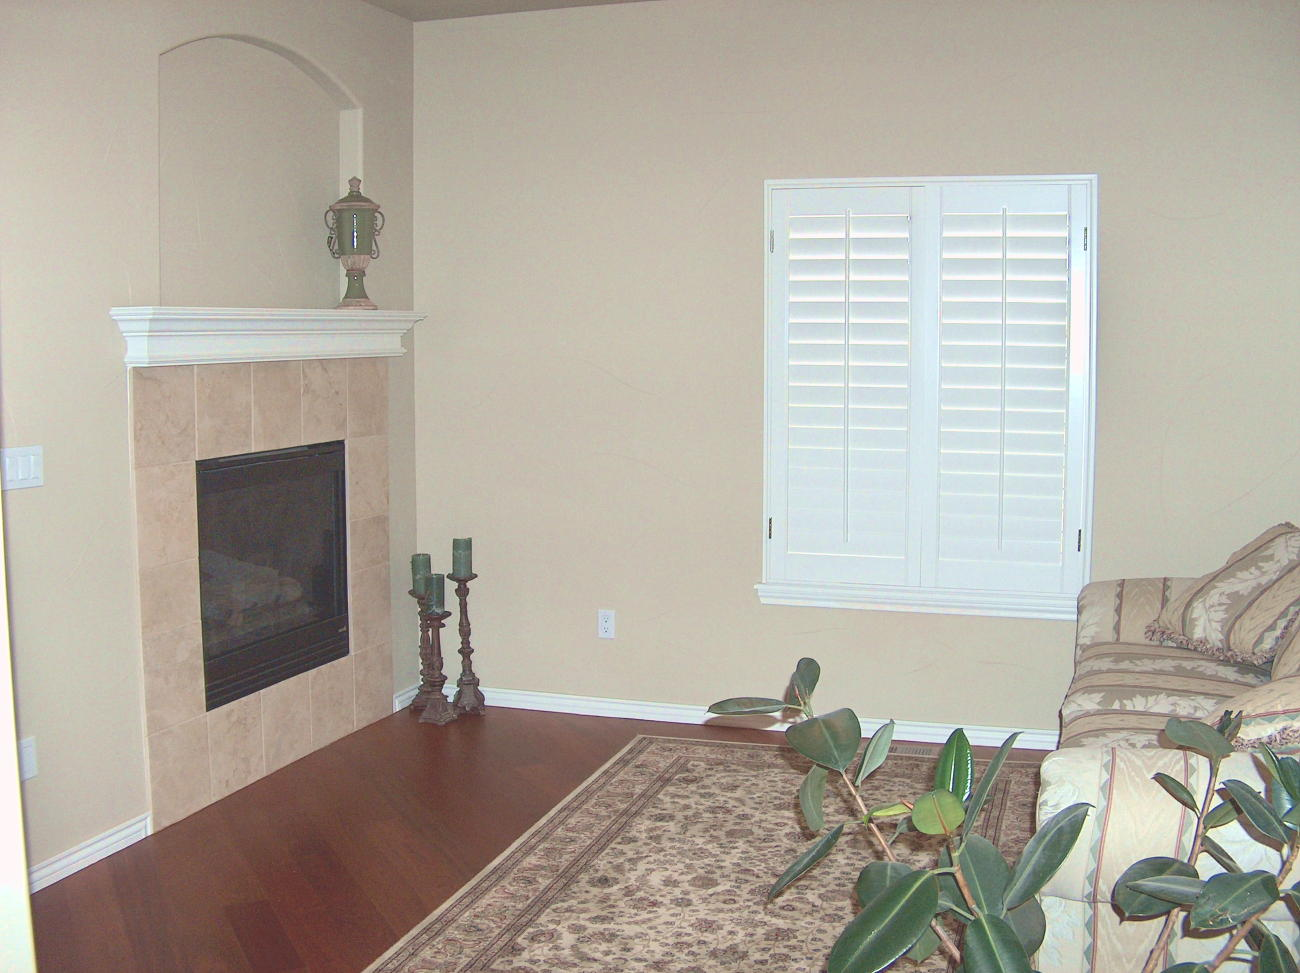 Photo of Formal Living Room Before Staging